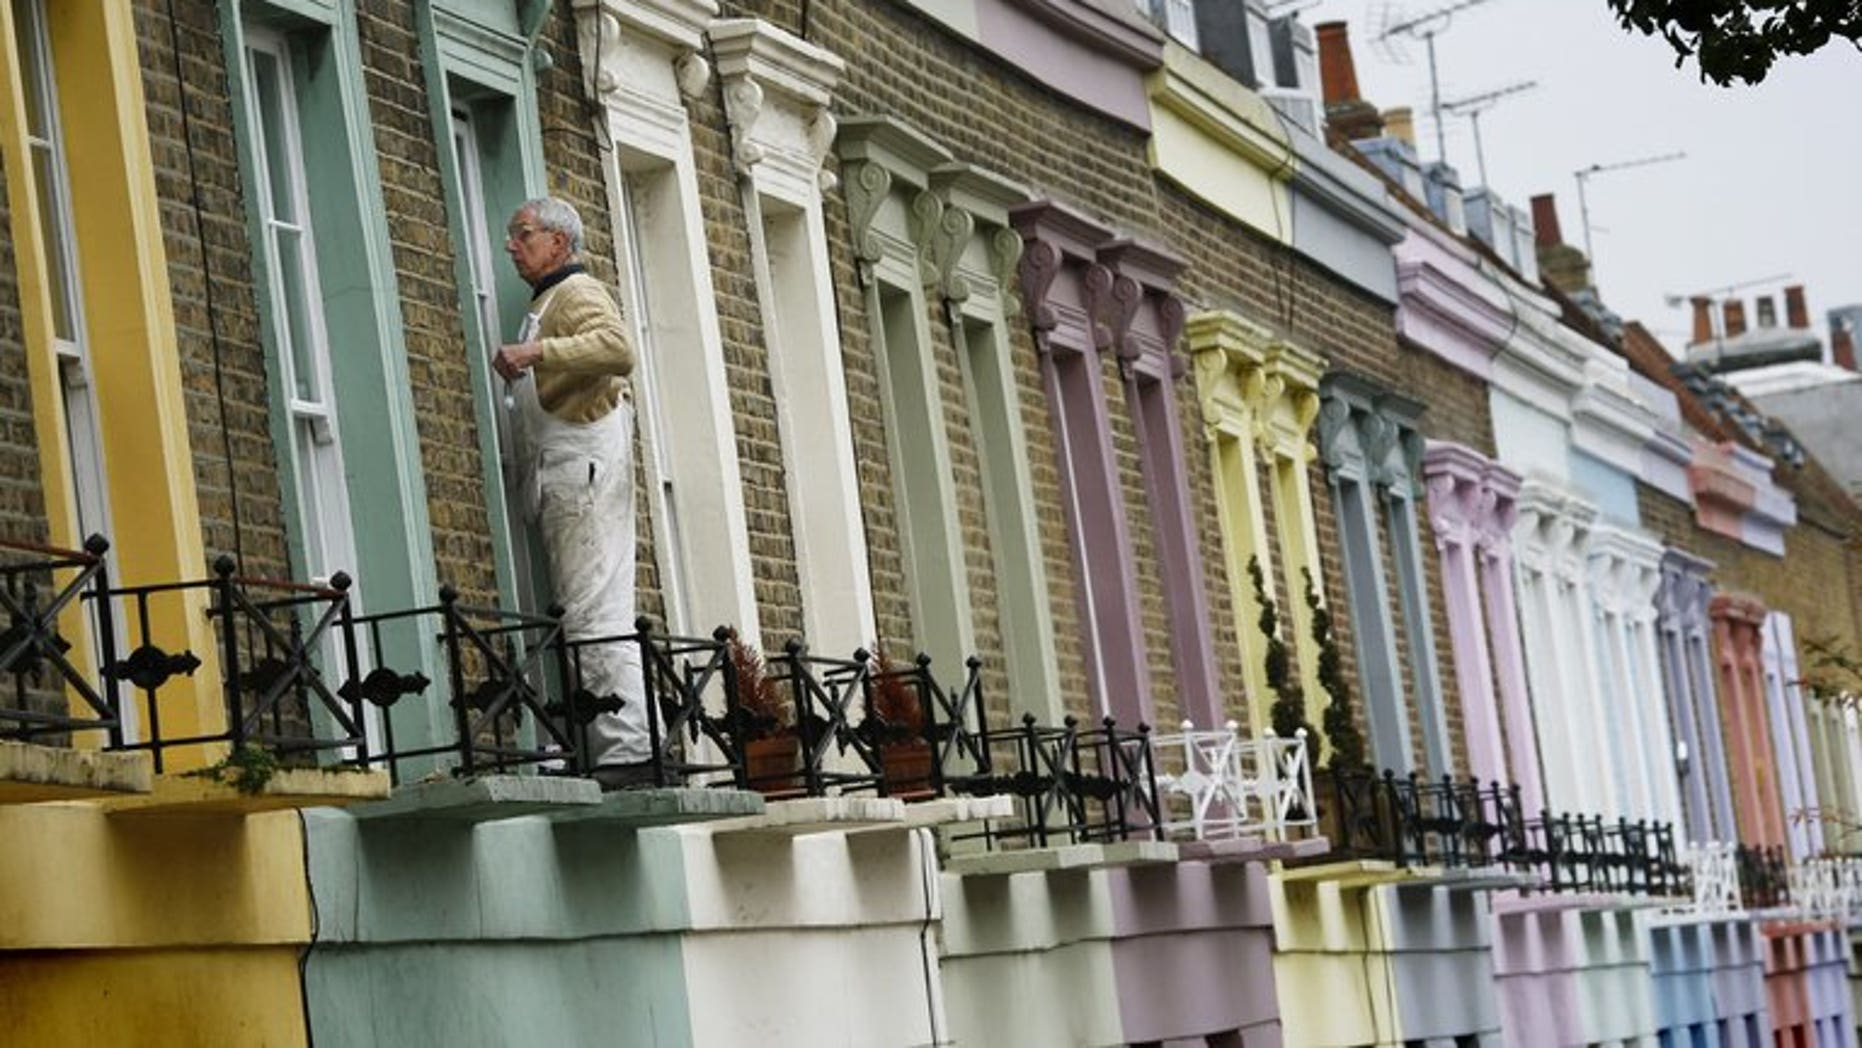 """A decorator paints a window frame on a house in Camden in London, on November 3, 2008. The United Nations' special rapporteur on housing called for Britain to scrap its so-called """"bedroom tax"""" because of its """"shocking"""" impact on the poor and vulnerable, sparking an angry response from the government."""